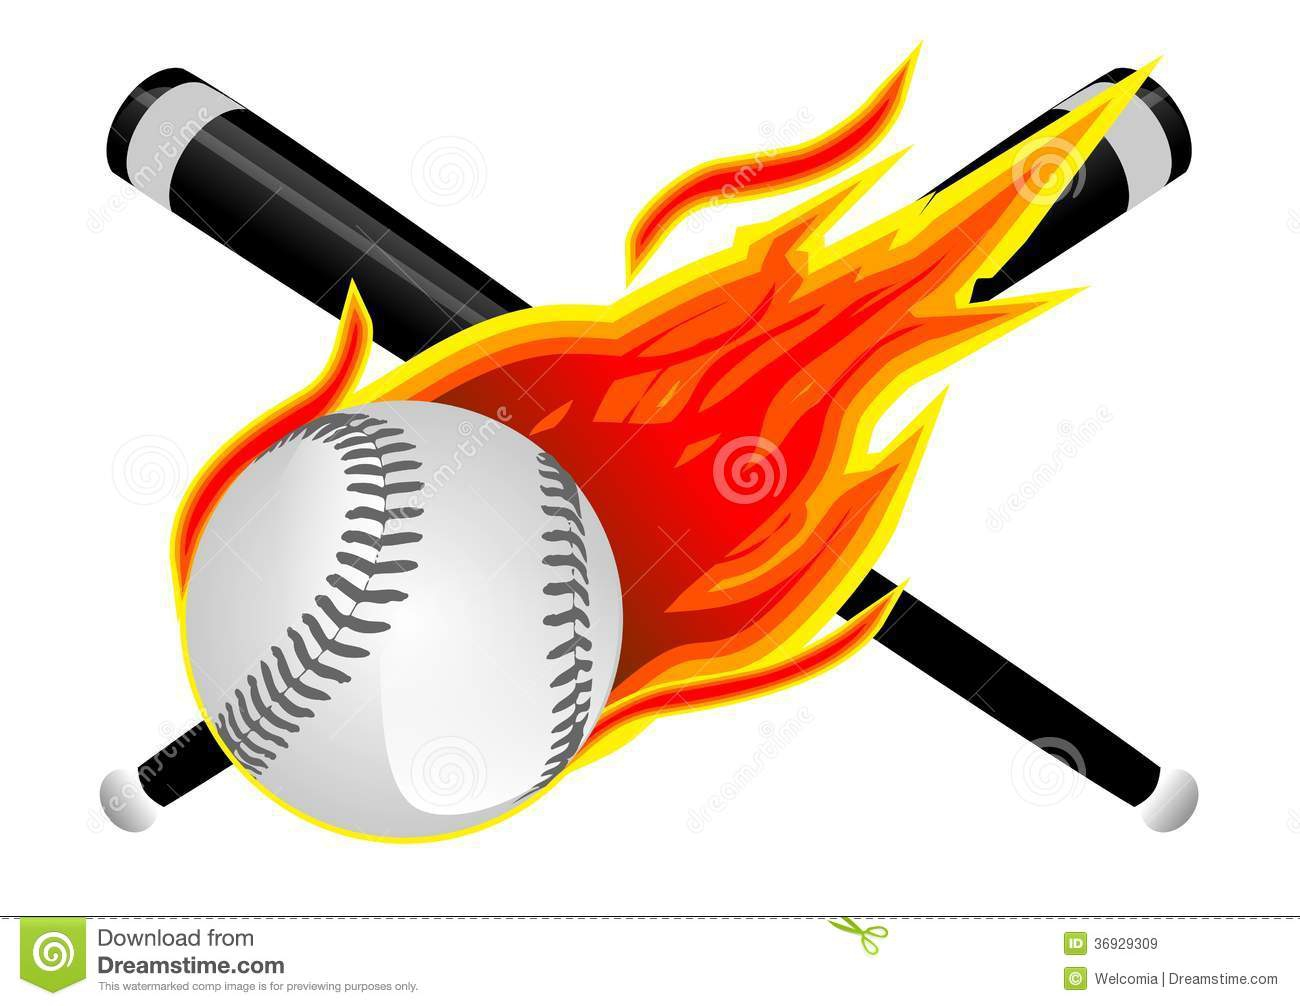 Flaming baseball clipart clip art royalty free library Flaming Baseball Clipart#1937751 clip art royalty free library